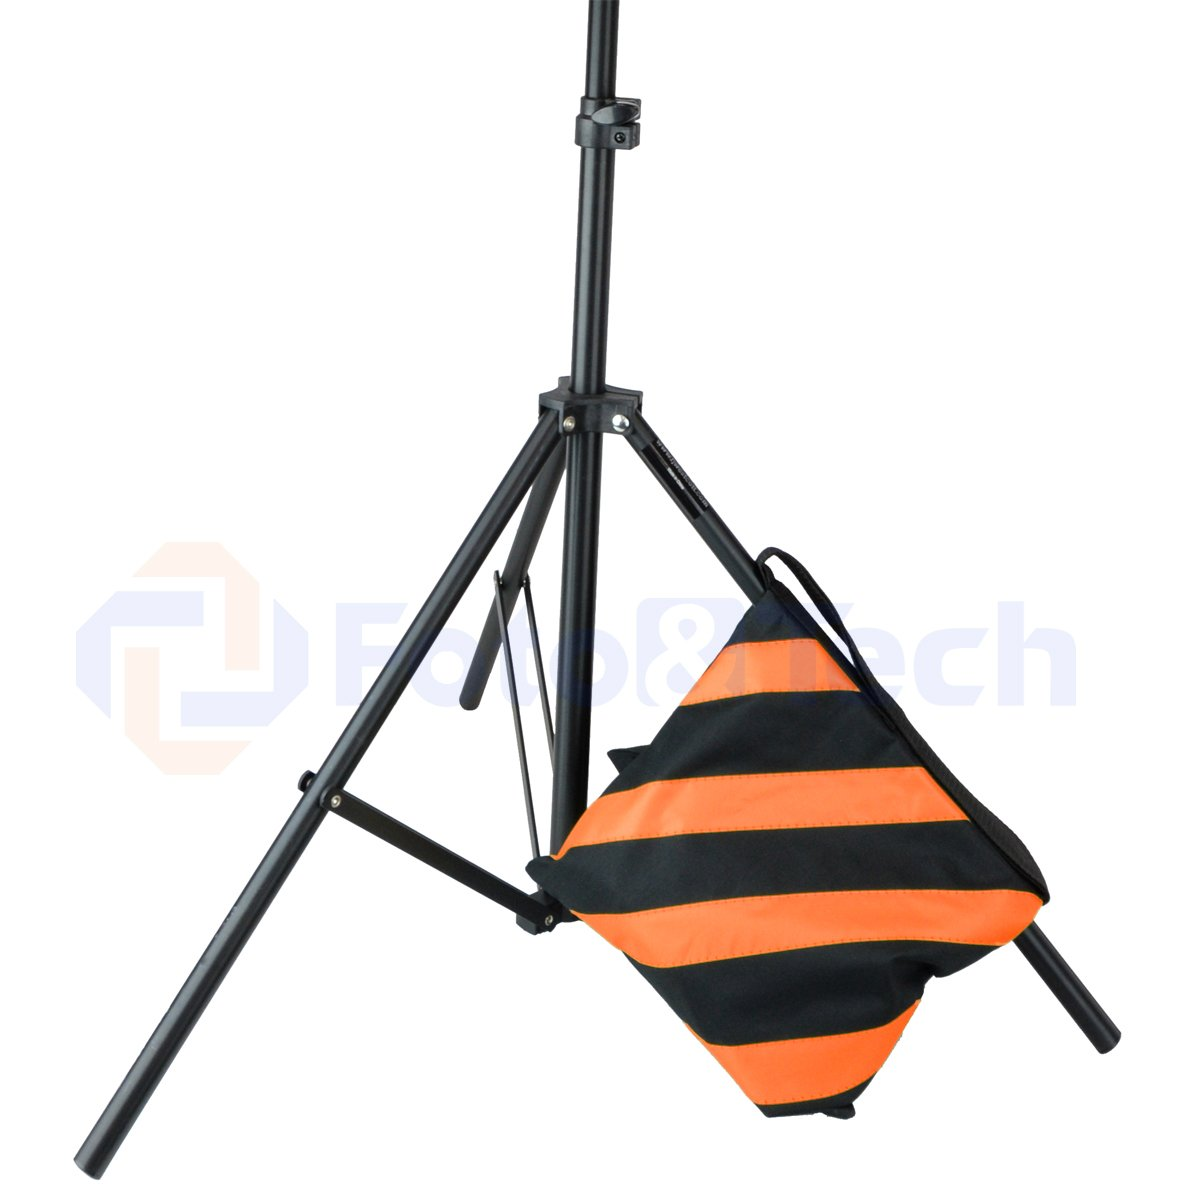 Foto/&Tech 4 Pack Water Resistant 600D Oxford Heavy Duty with Internal Metal Support Orange Sand Bag Weight Bags Saddle Bag Holds 20 LBS for photo video studio stand Tripod Indoor Outdoor